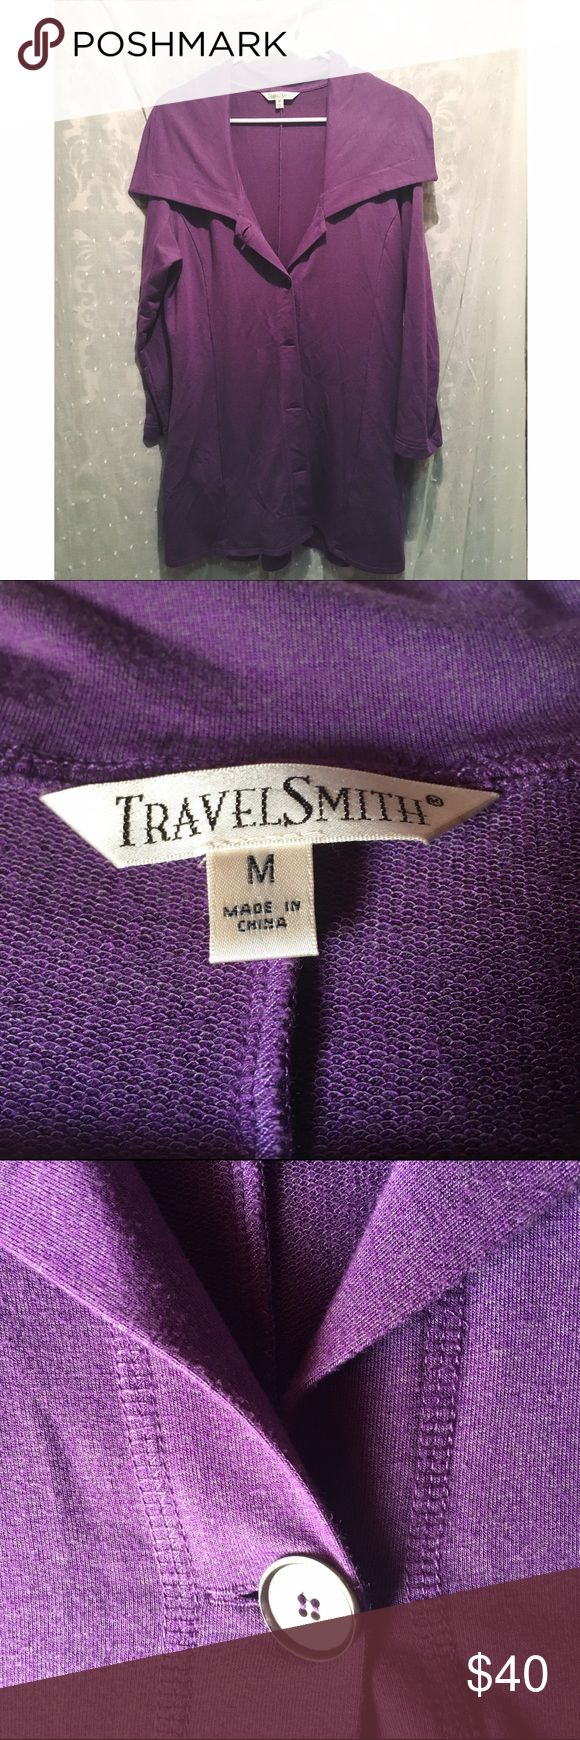 TravelSmith Fitted Jacket - Heather Purple, Medium This is a gorgeous piece for your fall wardrobe. Soft fabric, cute button details in a beautiful heather purple fabric. 💜 TravelSmith Jackets & Coats Blazers